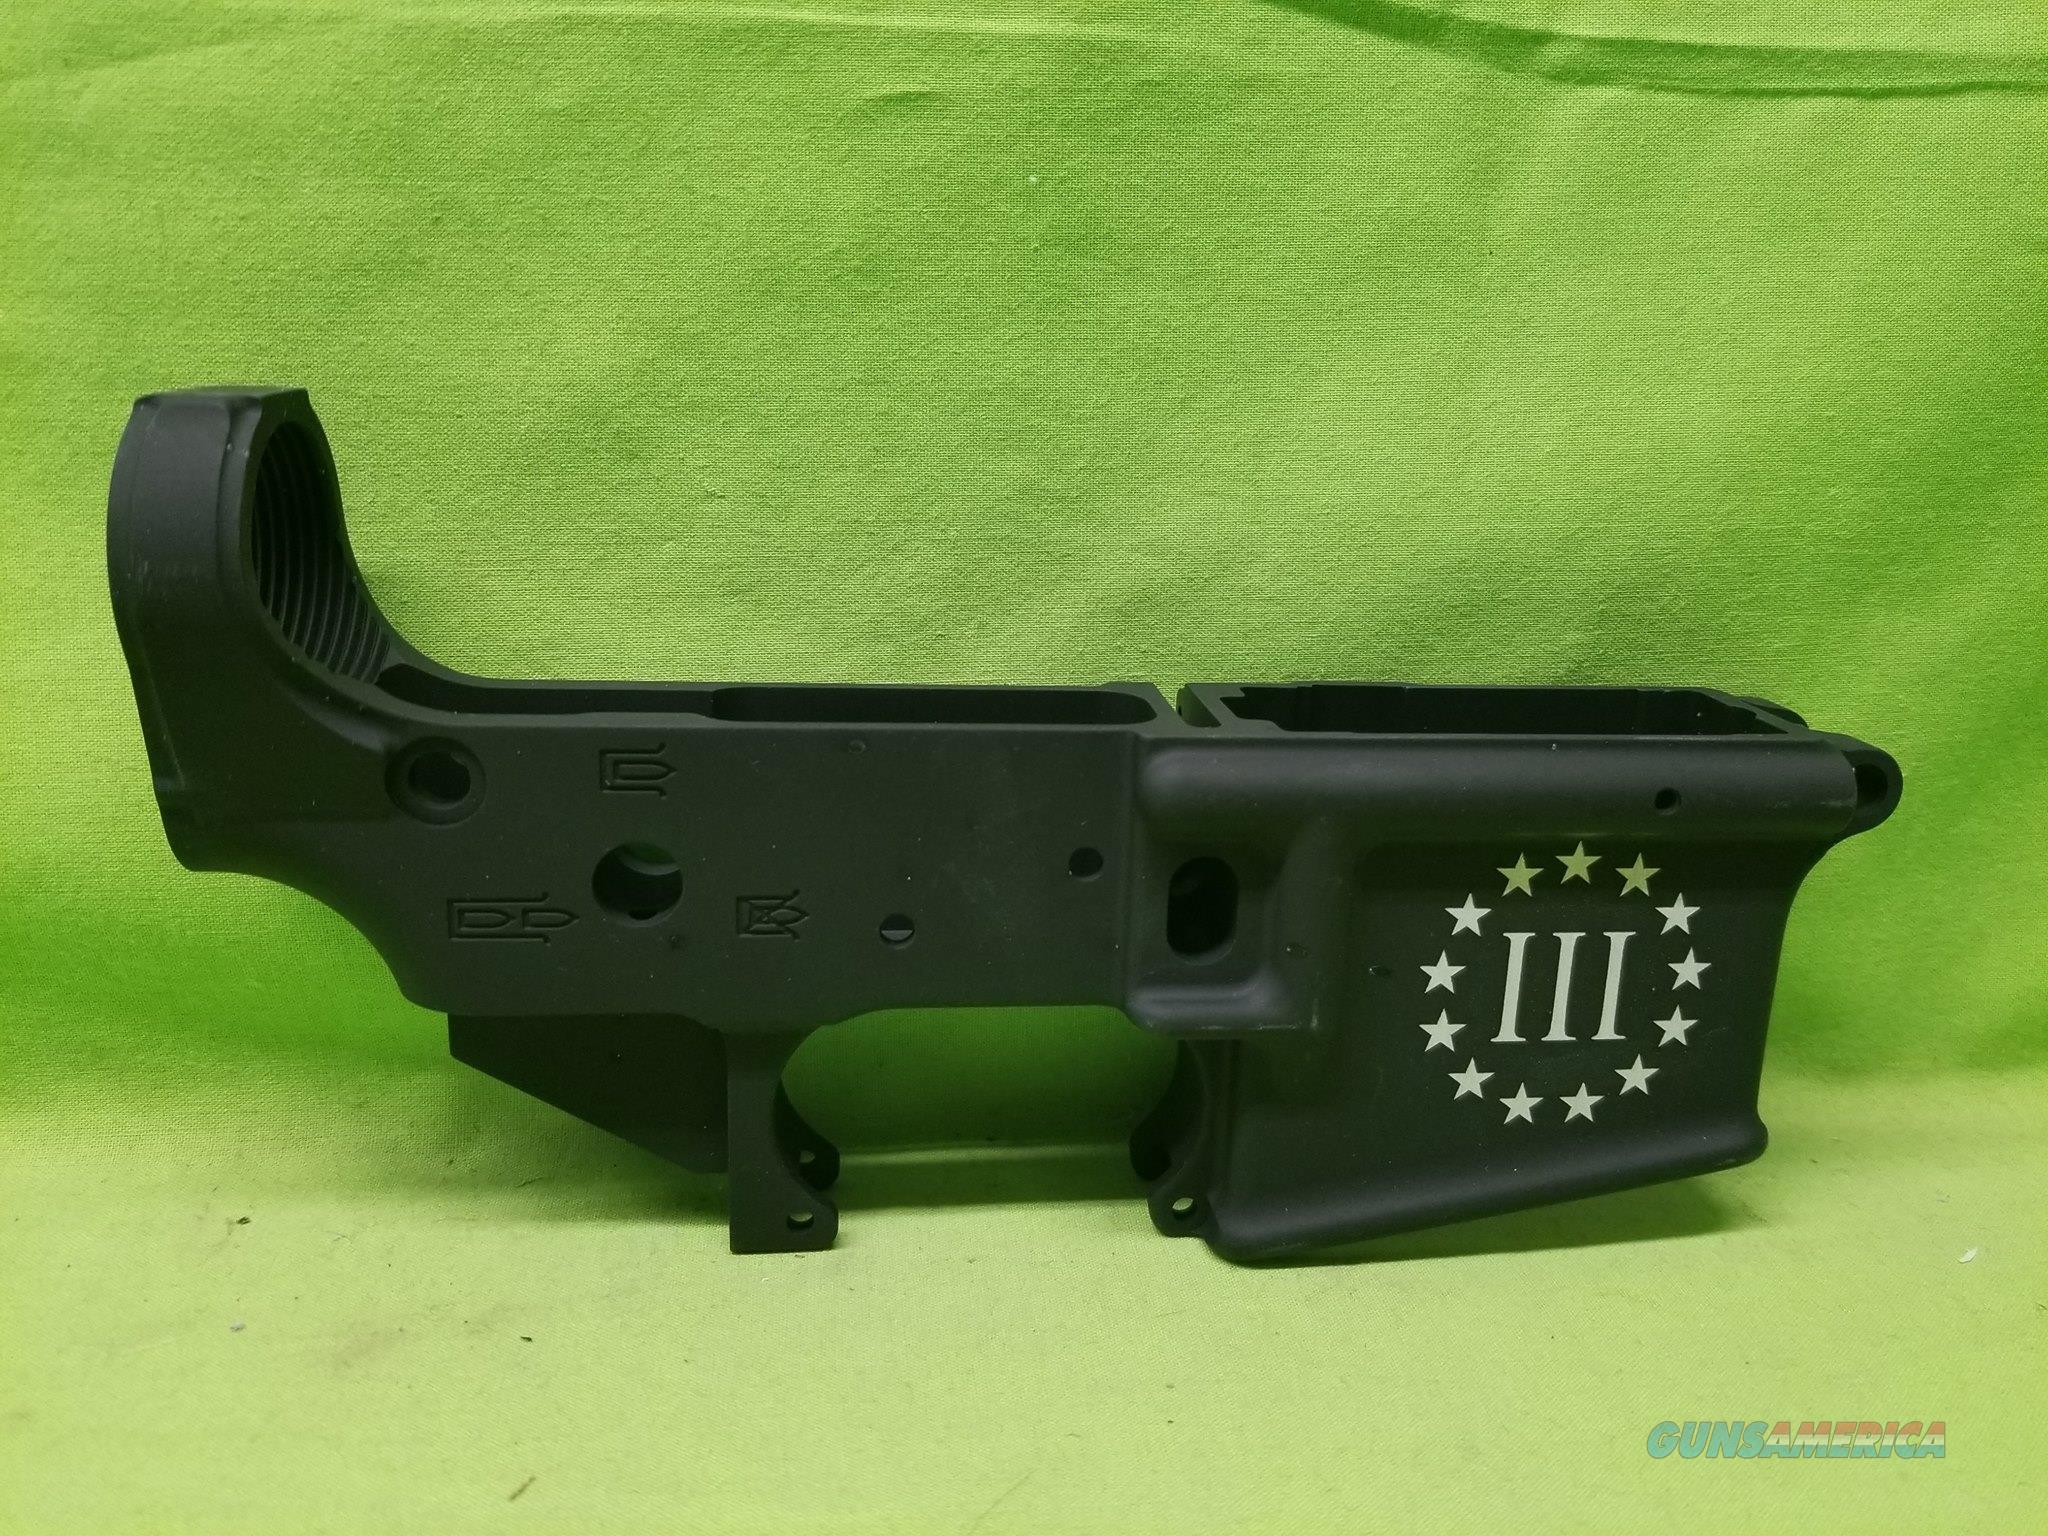 AA TACTICAL TAC-L WING STRIPPED LOWER 3% ETCHED  Guns > Rifles > AR-15 Rifles - Small Manufacturers > Lower Only